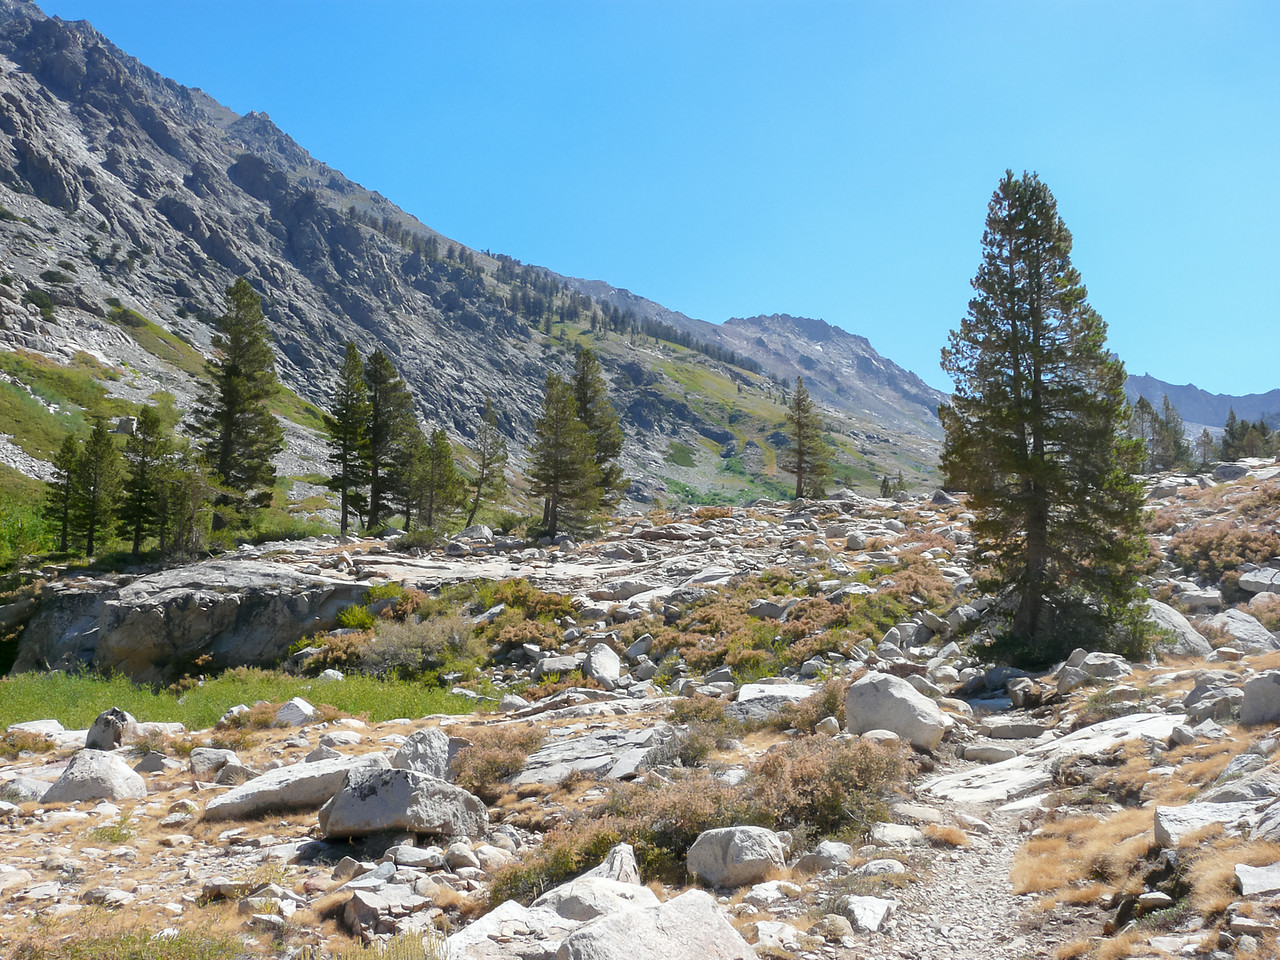 The subsequent approach to Piute Lake was often open and rocky.